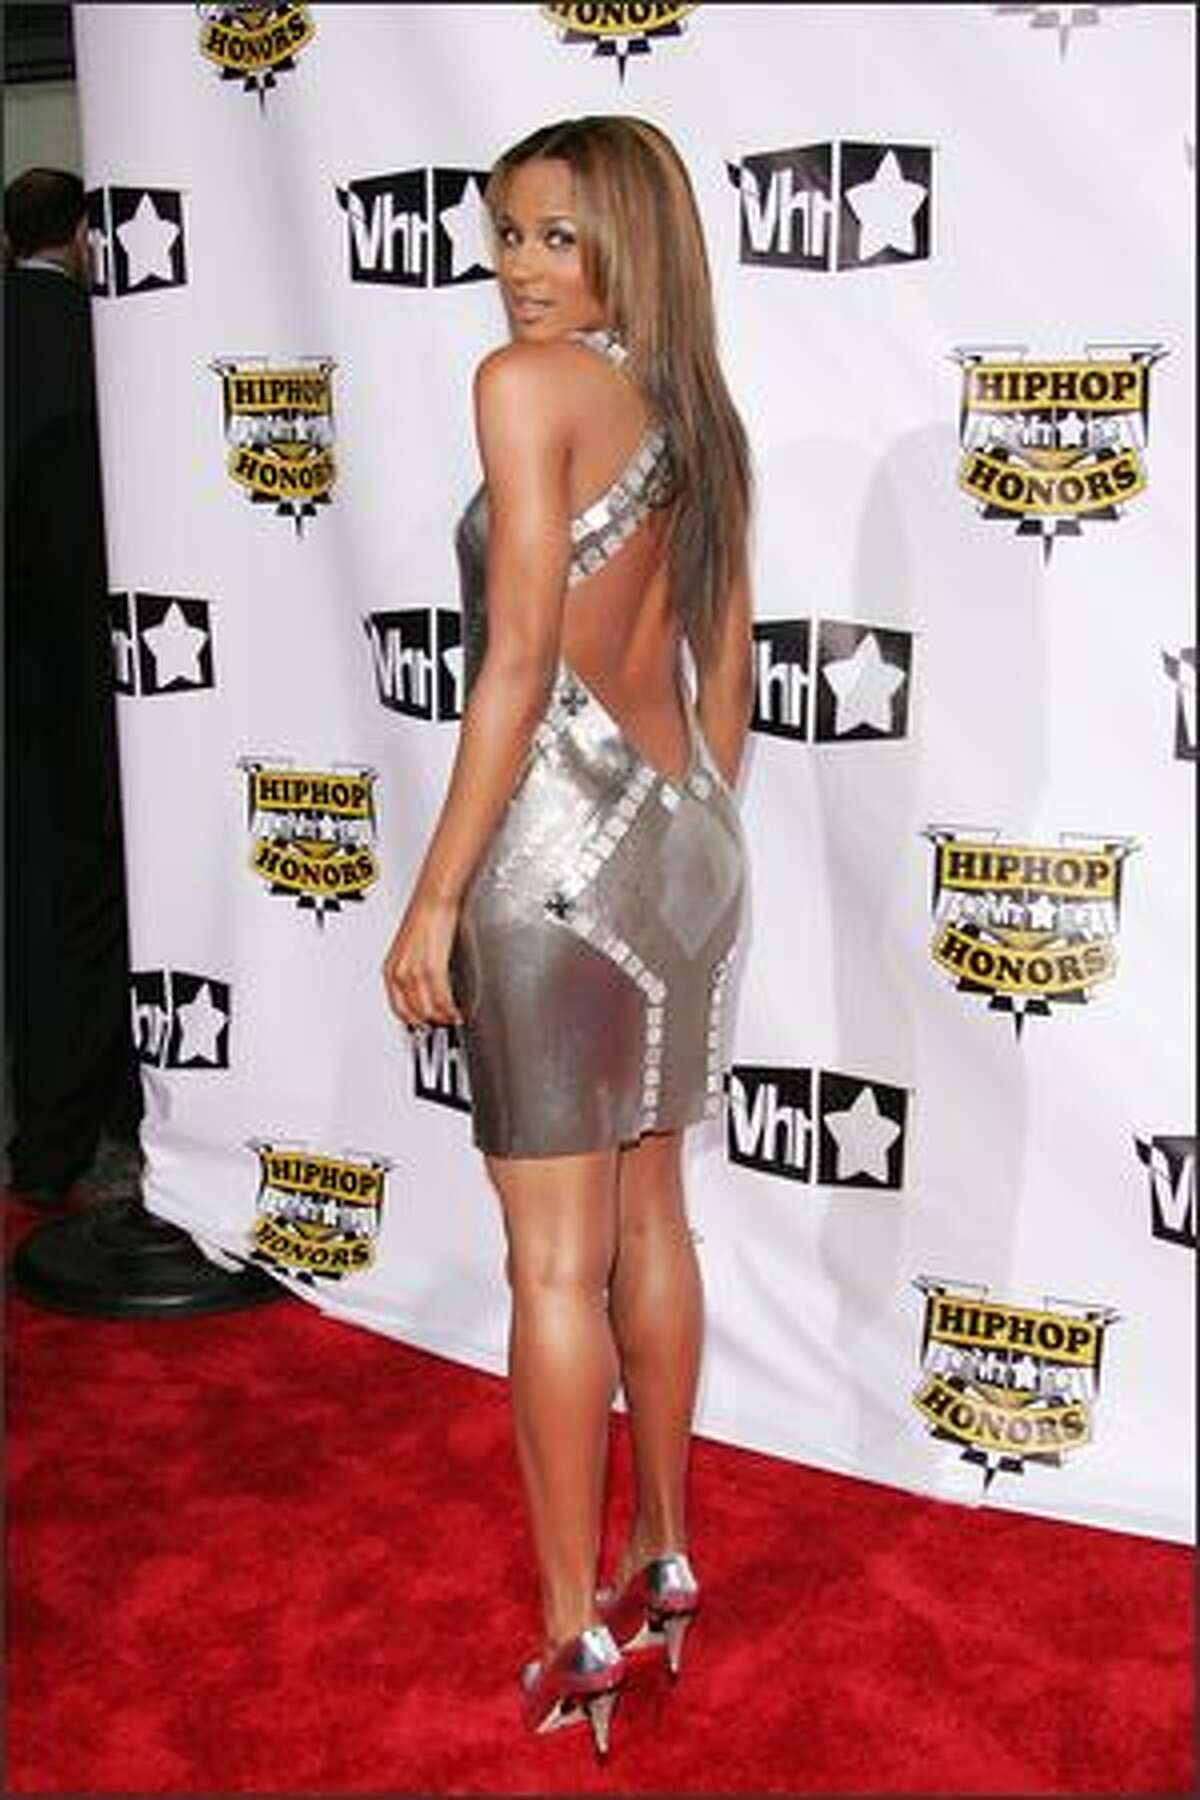 Singer Ciara attends the 4th Annual VH1 Hip Hop Honors ceremony at the Hammerstein Ballroom on October 4, 2007 in New York City.